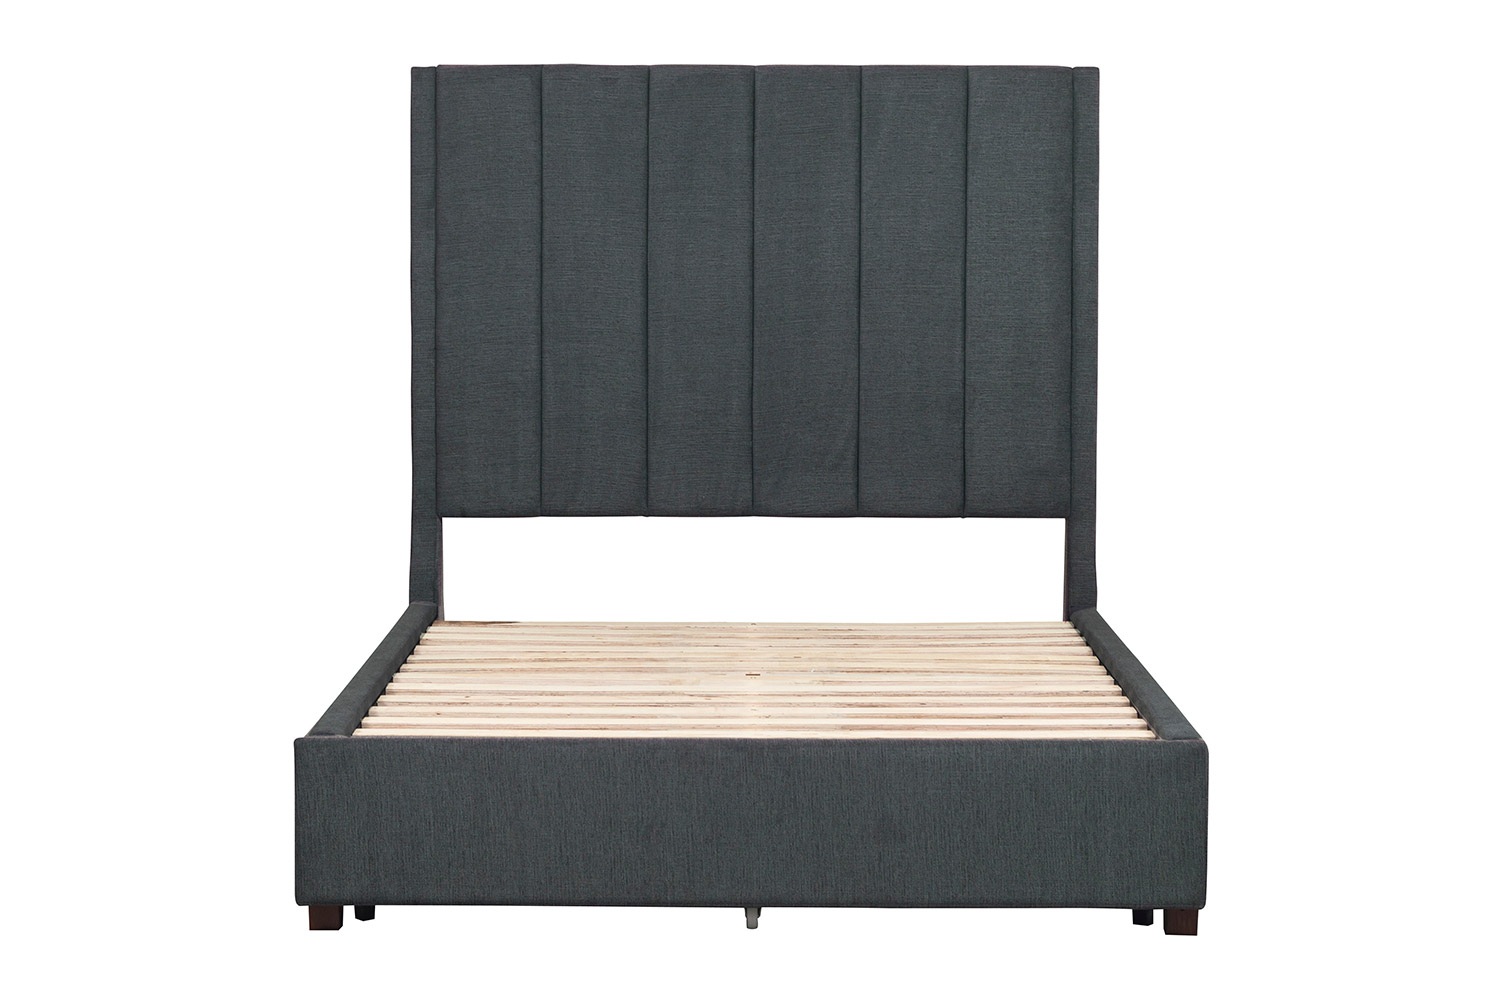 Homelegance Neunan Platform Bed - Dark Gray